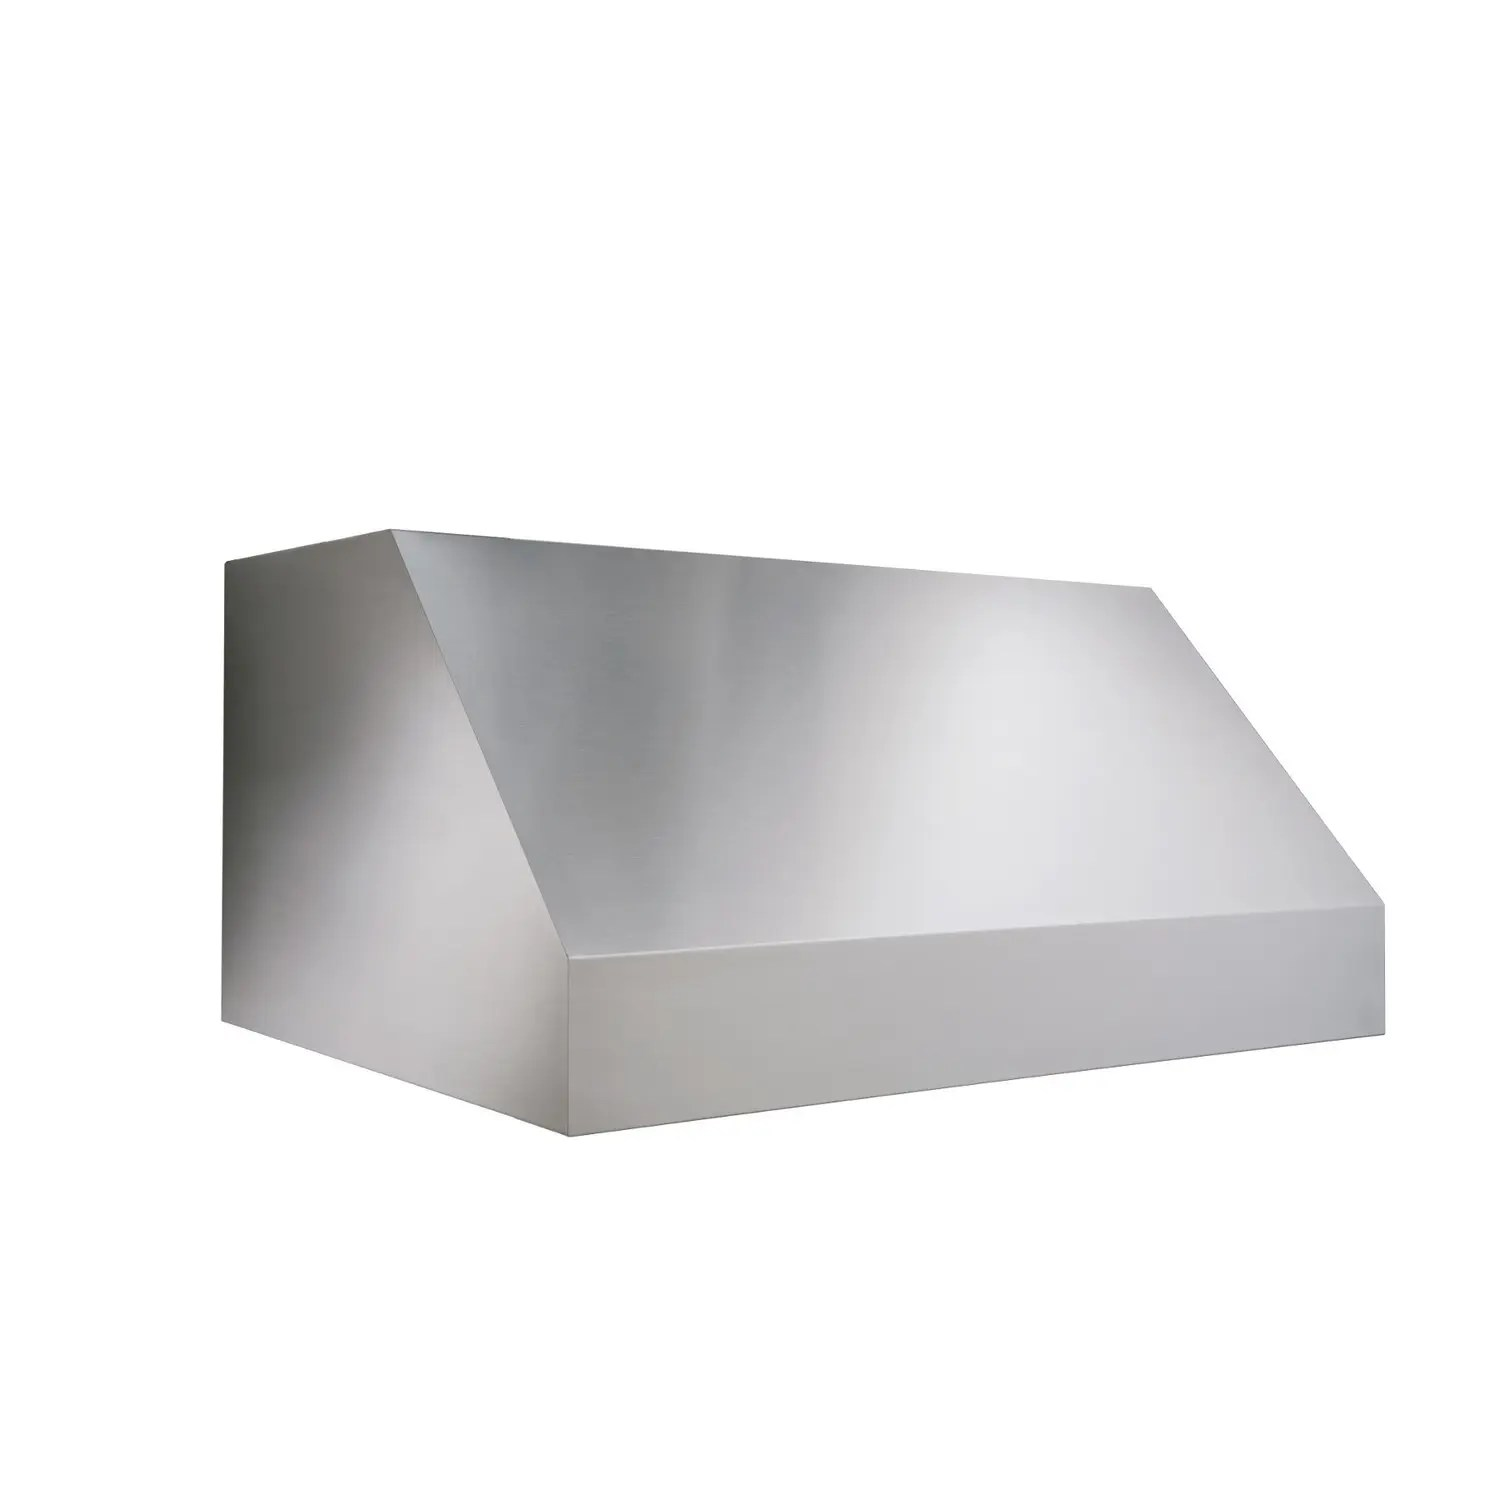 42-Inch Pro-Style Outdoor Range Hood, 1100 CFM, Stainless Steel